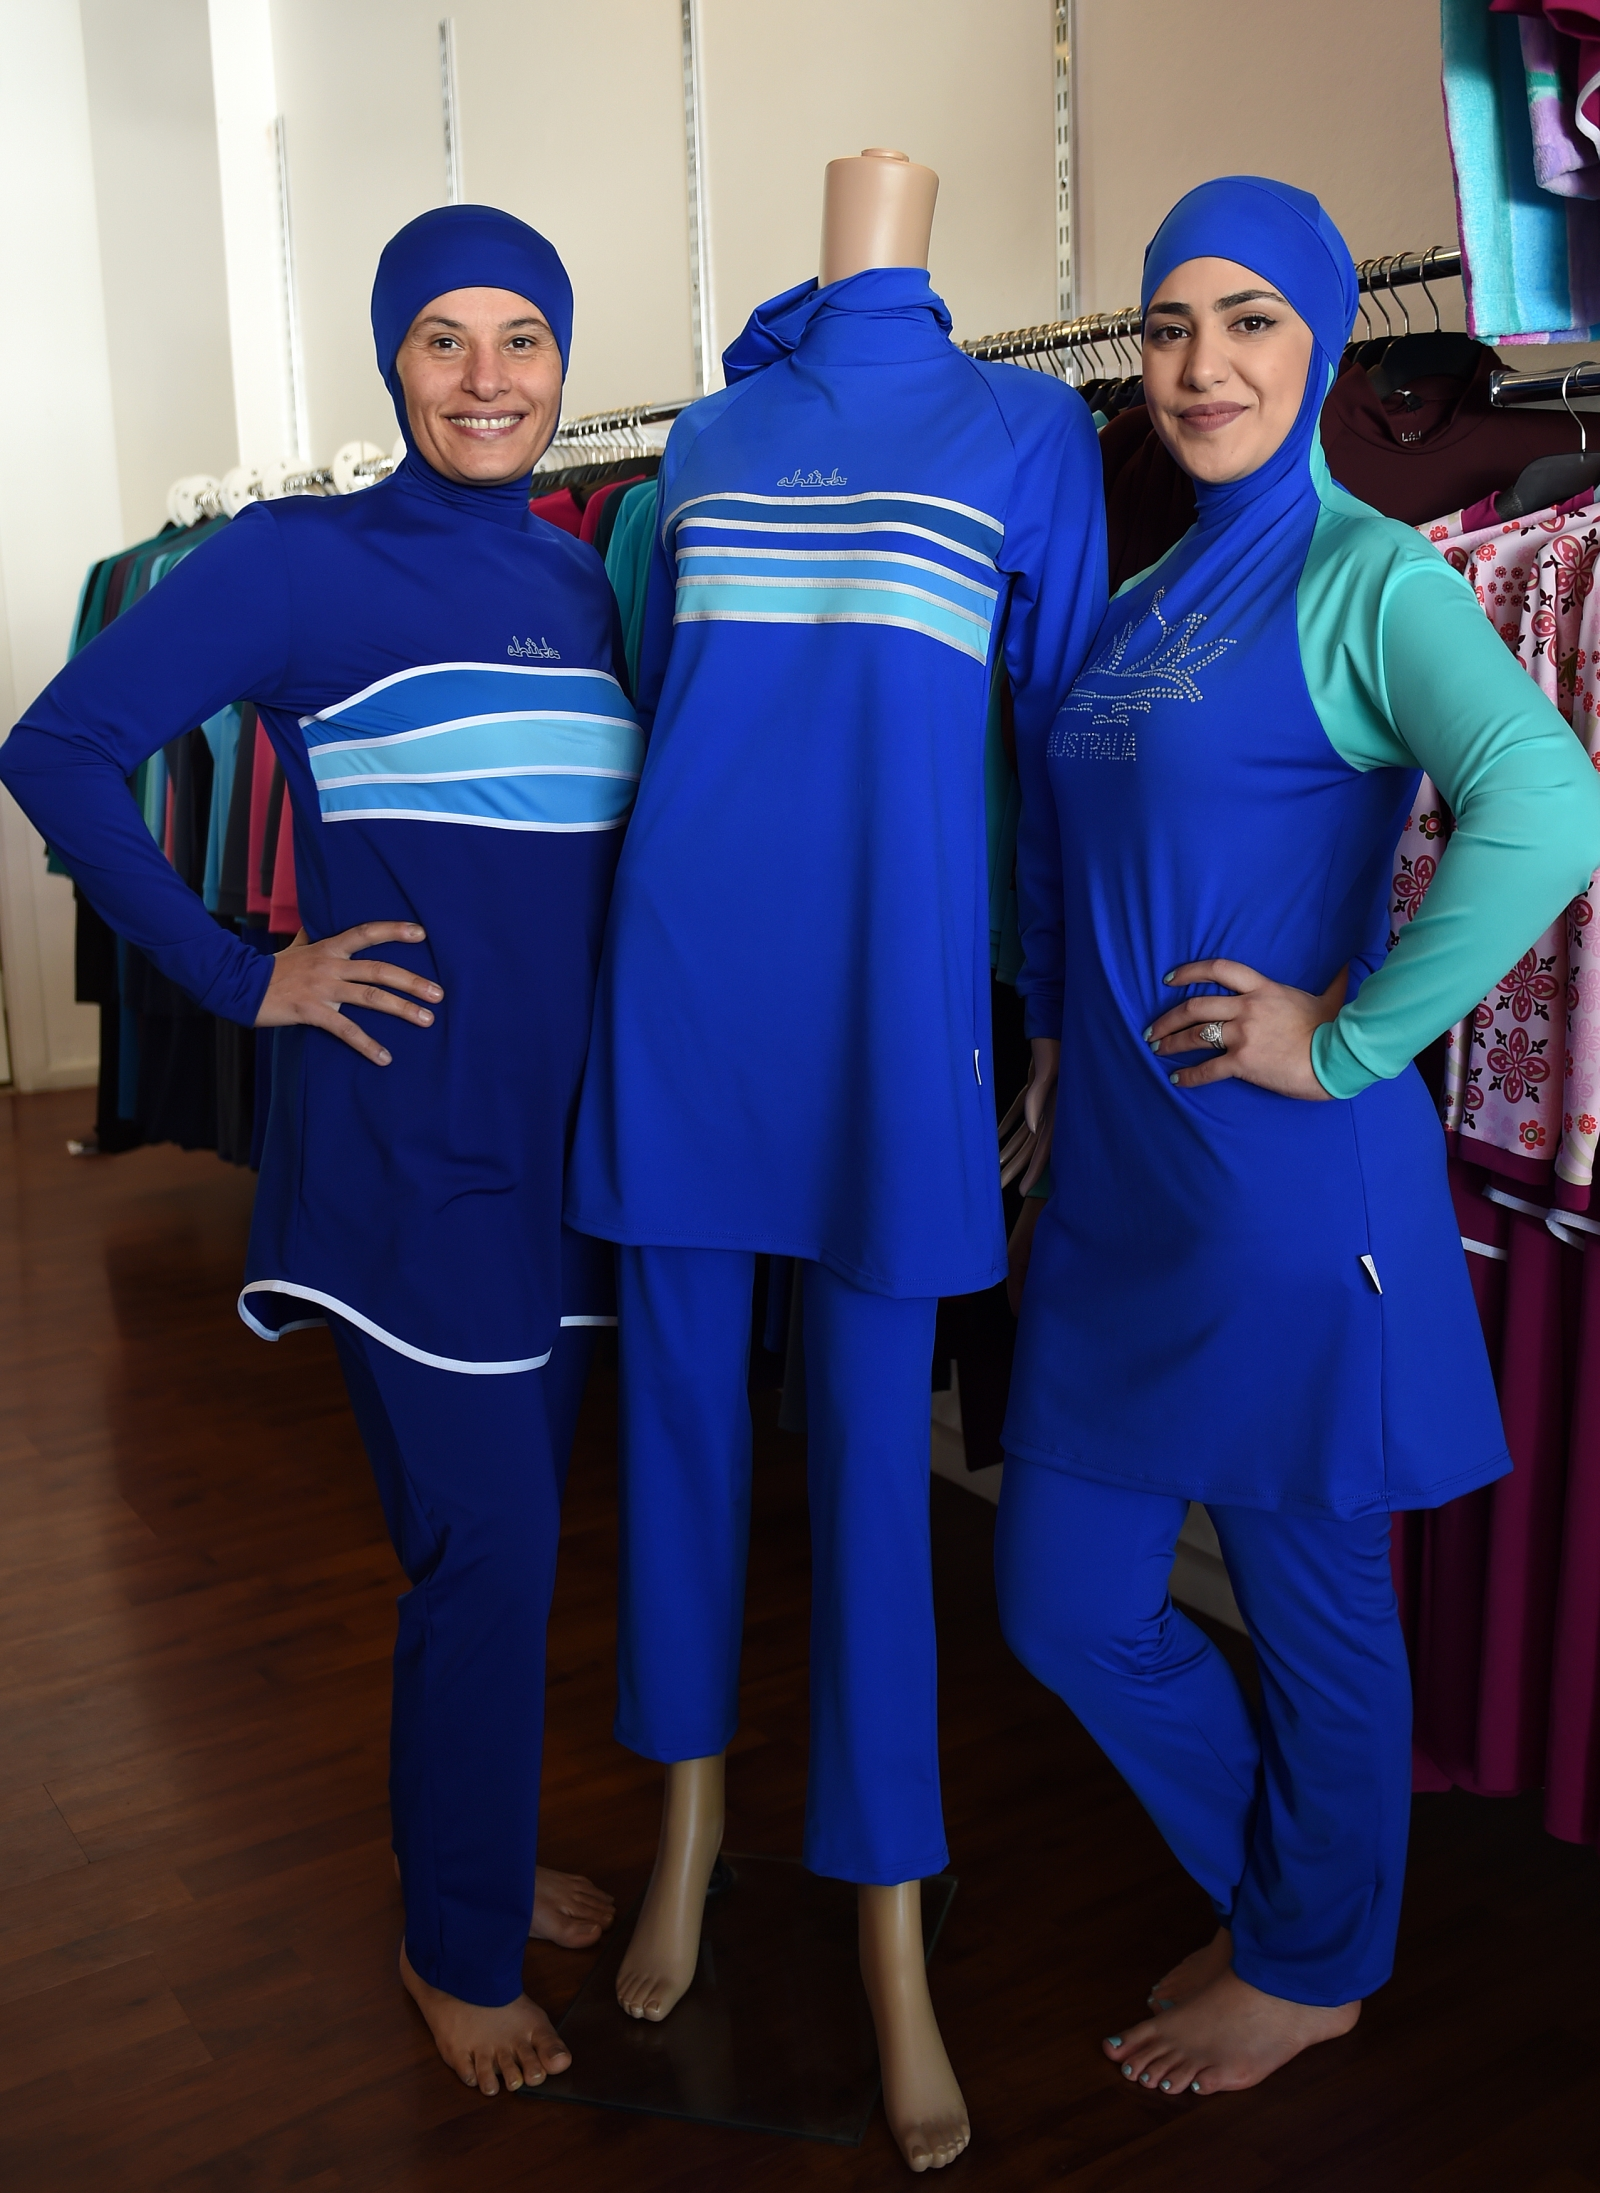 Algerian offers to pay fines of women wearing burkinis